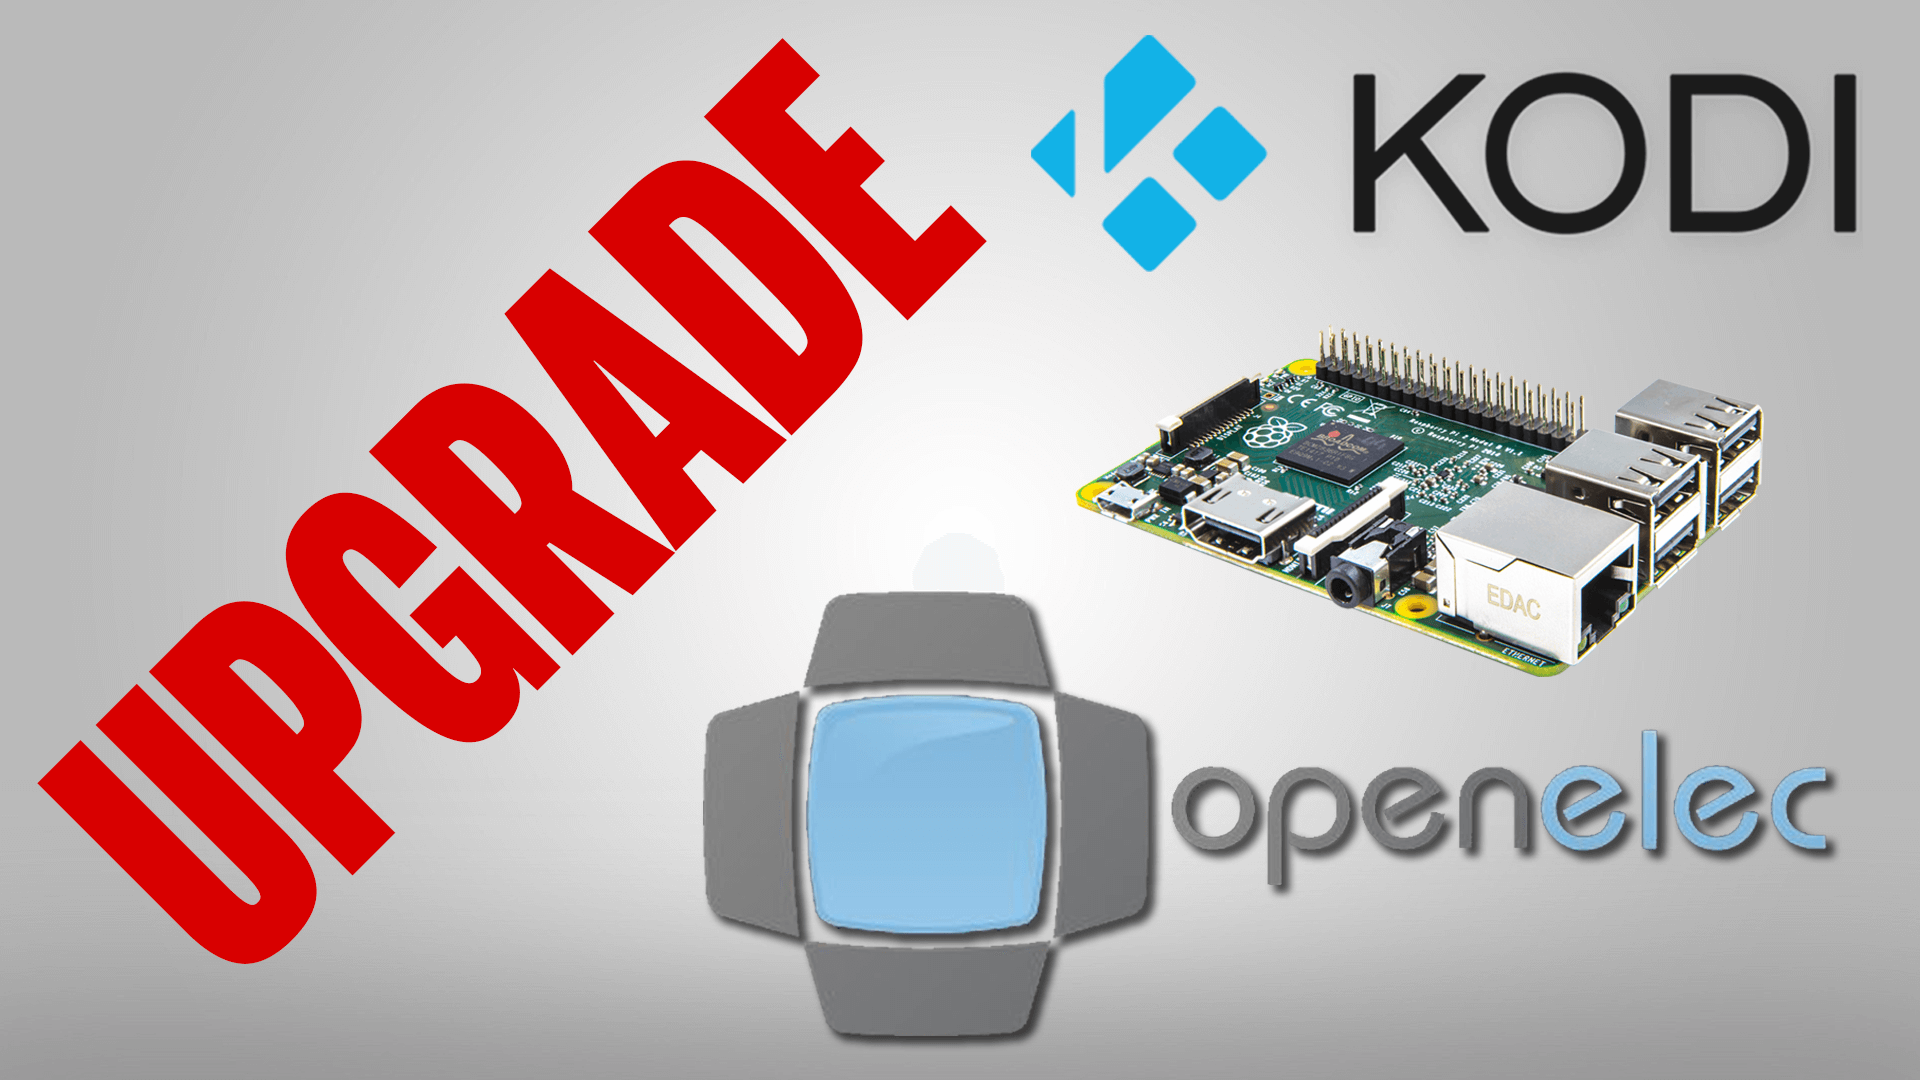 How to Update OpenElec Kodi on Raspberry Pi 3 2 1 B+ 0 Zero